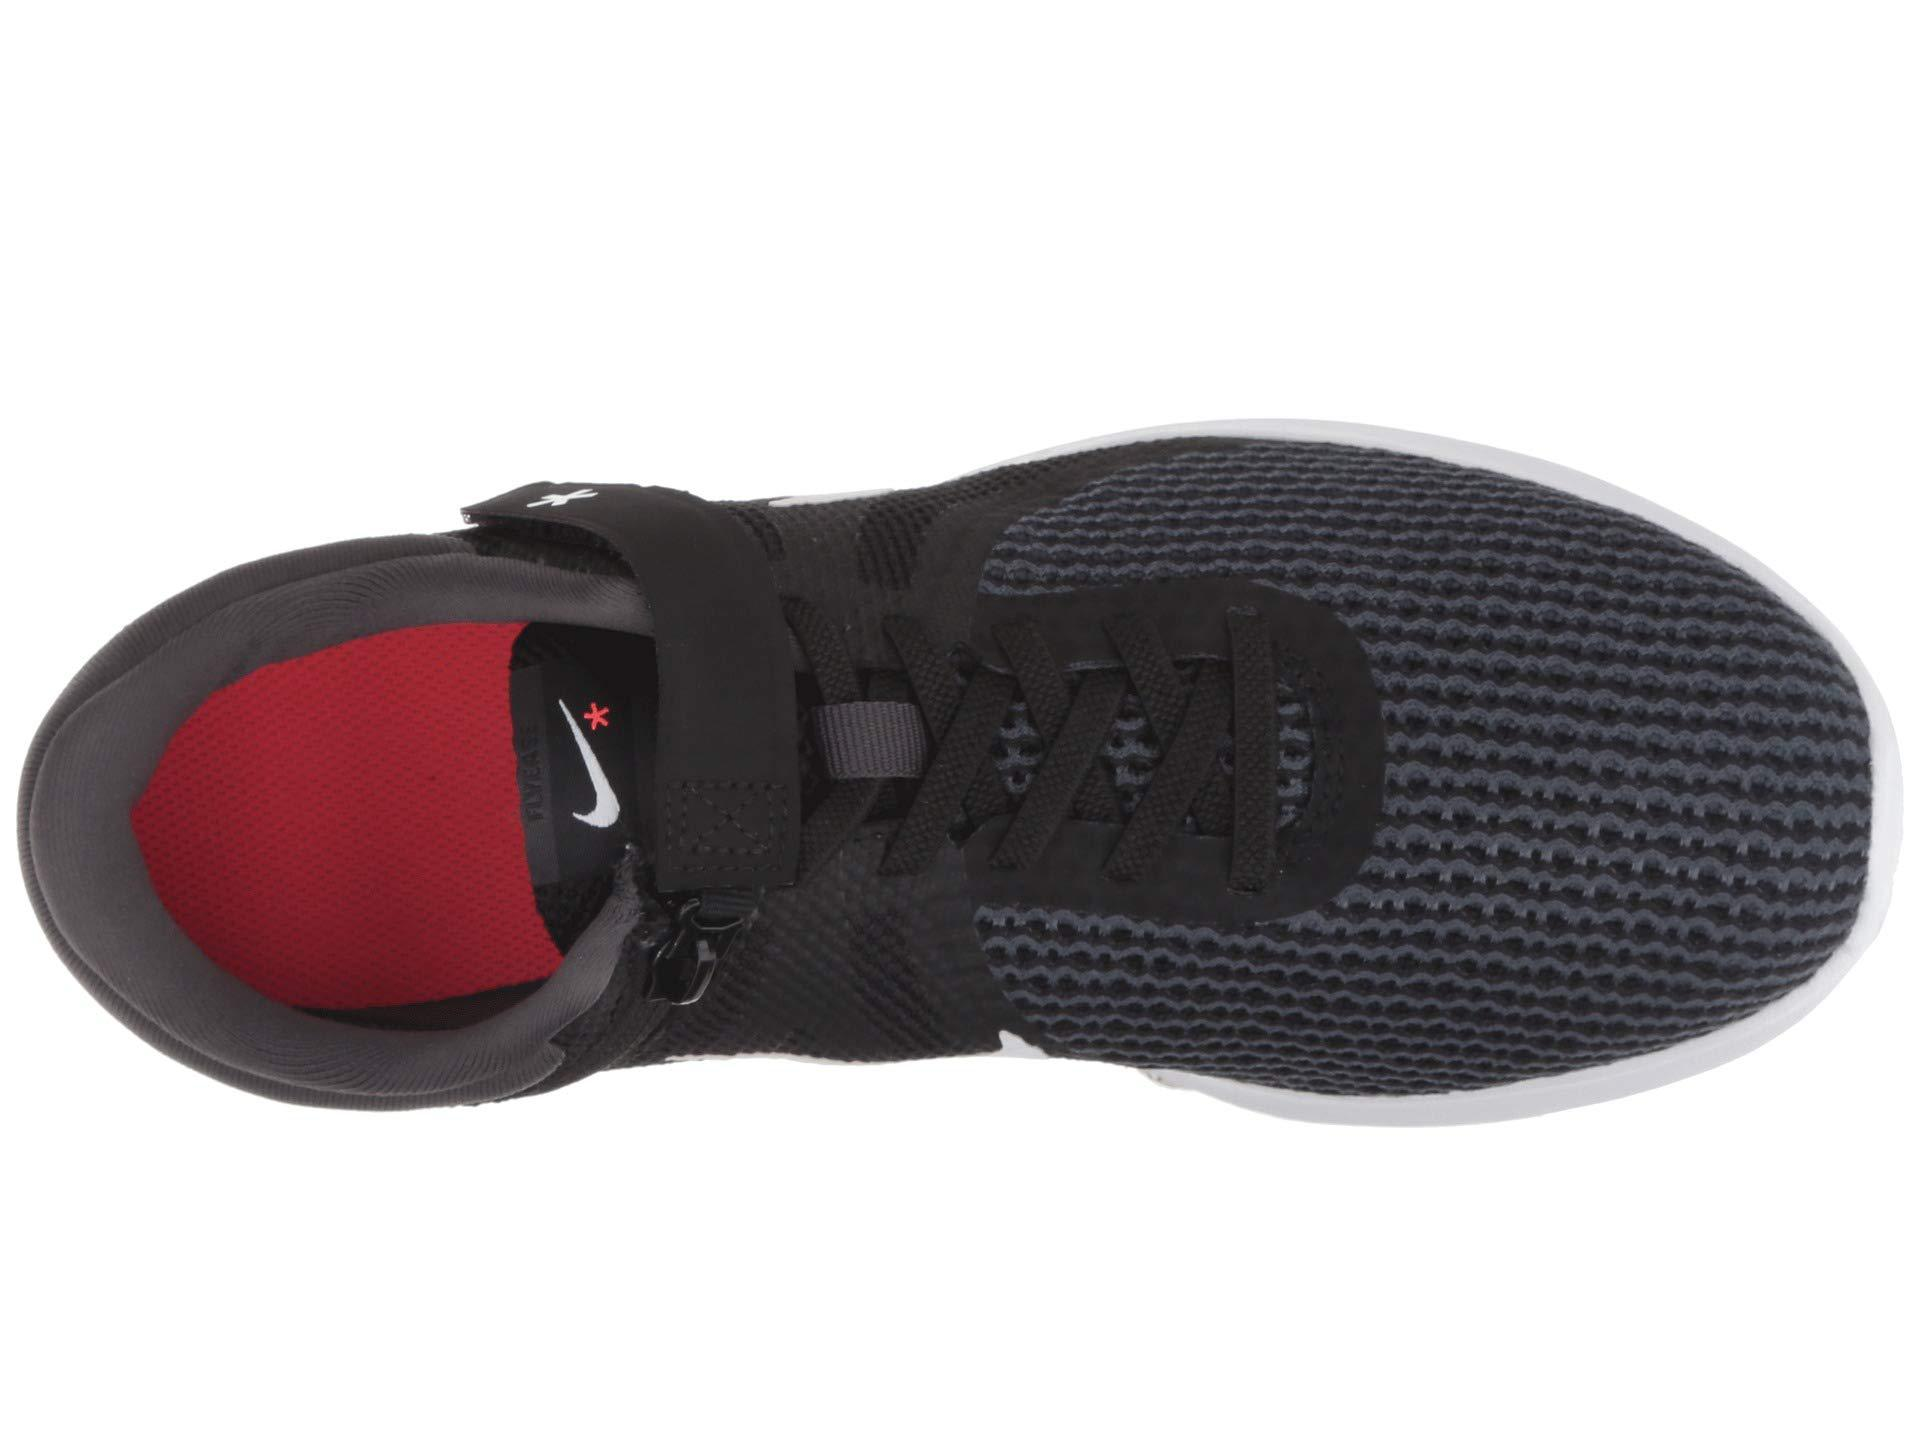 2e0050f5da10 Lyst - Nike Revolution 4 Flyease (black white anthracite solar Red ...